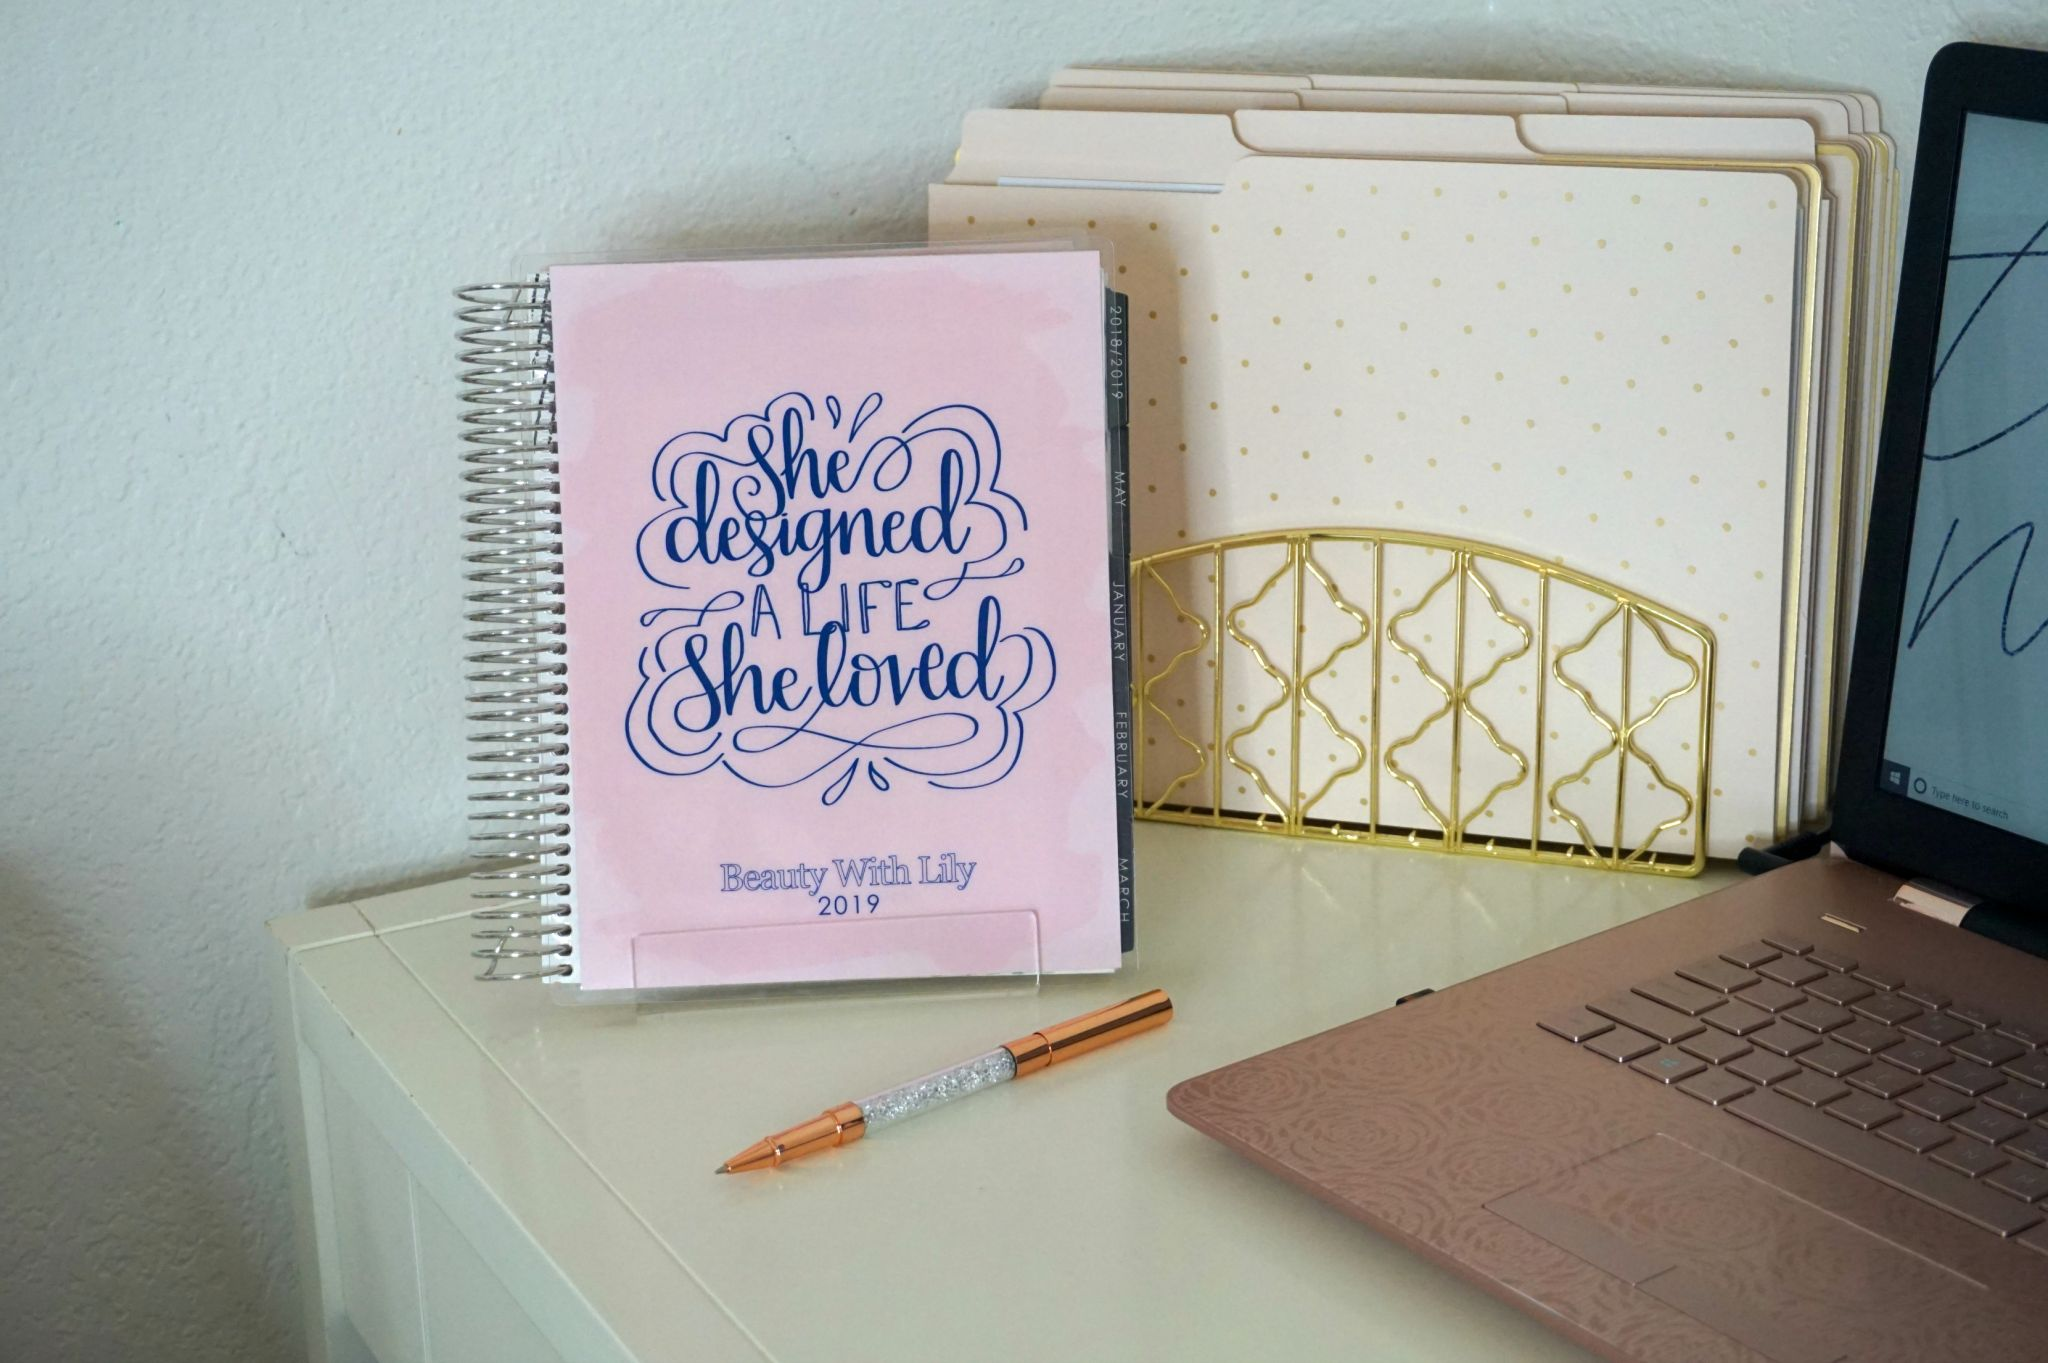 How To Use A Planner Effectively // How To Use A Planner // How To Be More Productive // Erin Condren Planner // Monthly Planner // Organization Tips // Planning Tips | Beauty With Lily